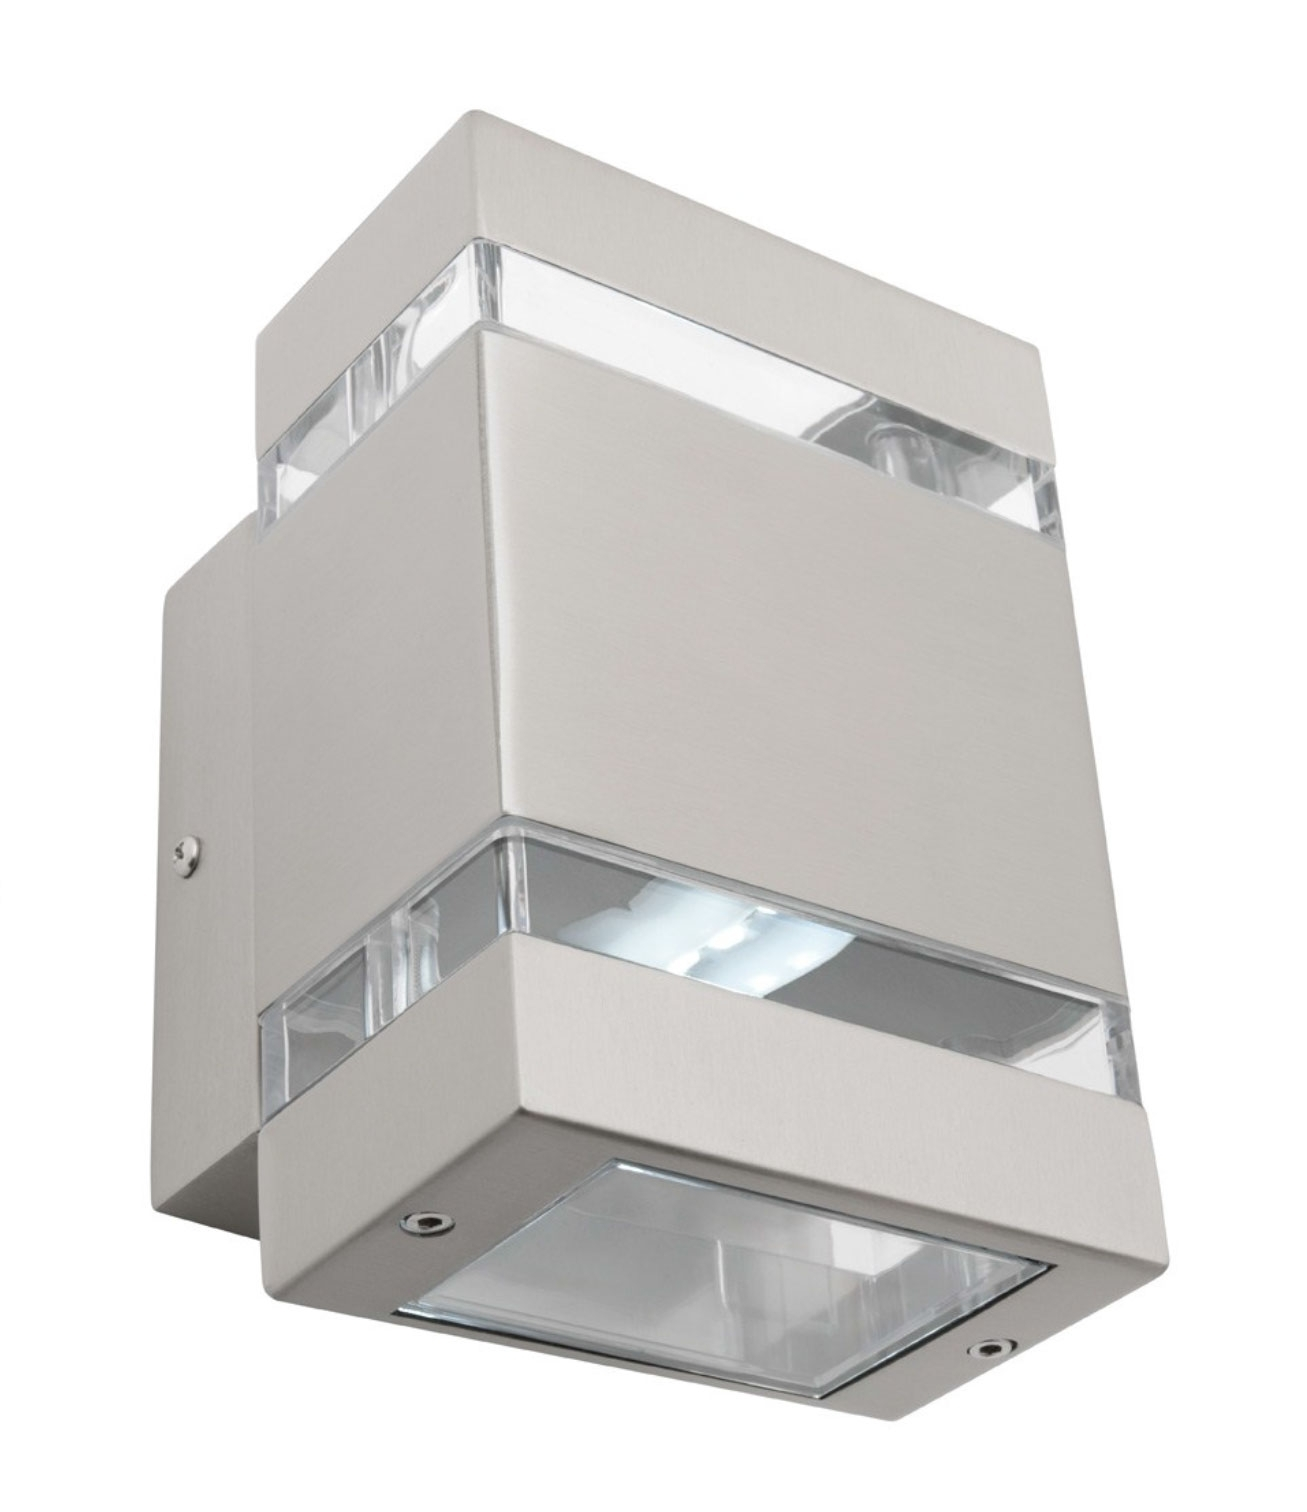 Hedland Led Up/down Wall Light Stainless Steel | Online Lighting Inside Outdoor Up Down Wall Led Lights (#8 of 15)